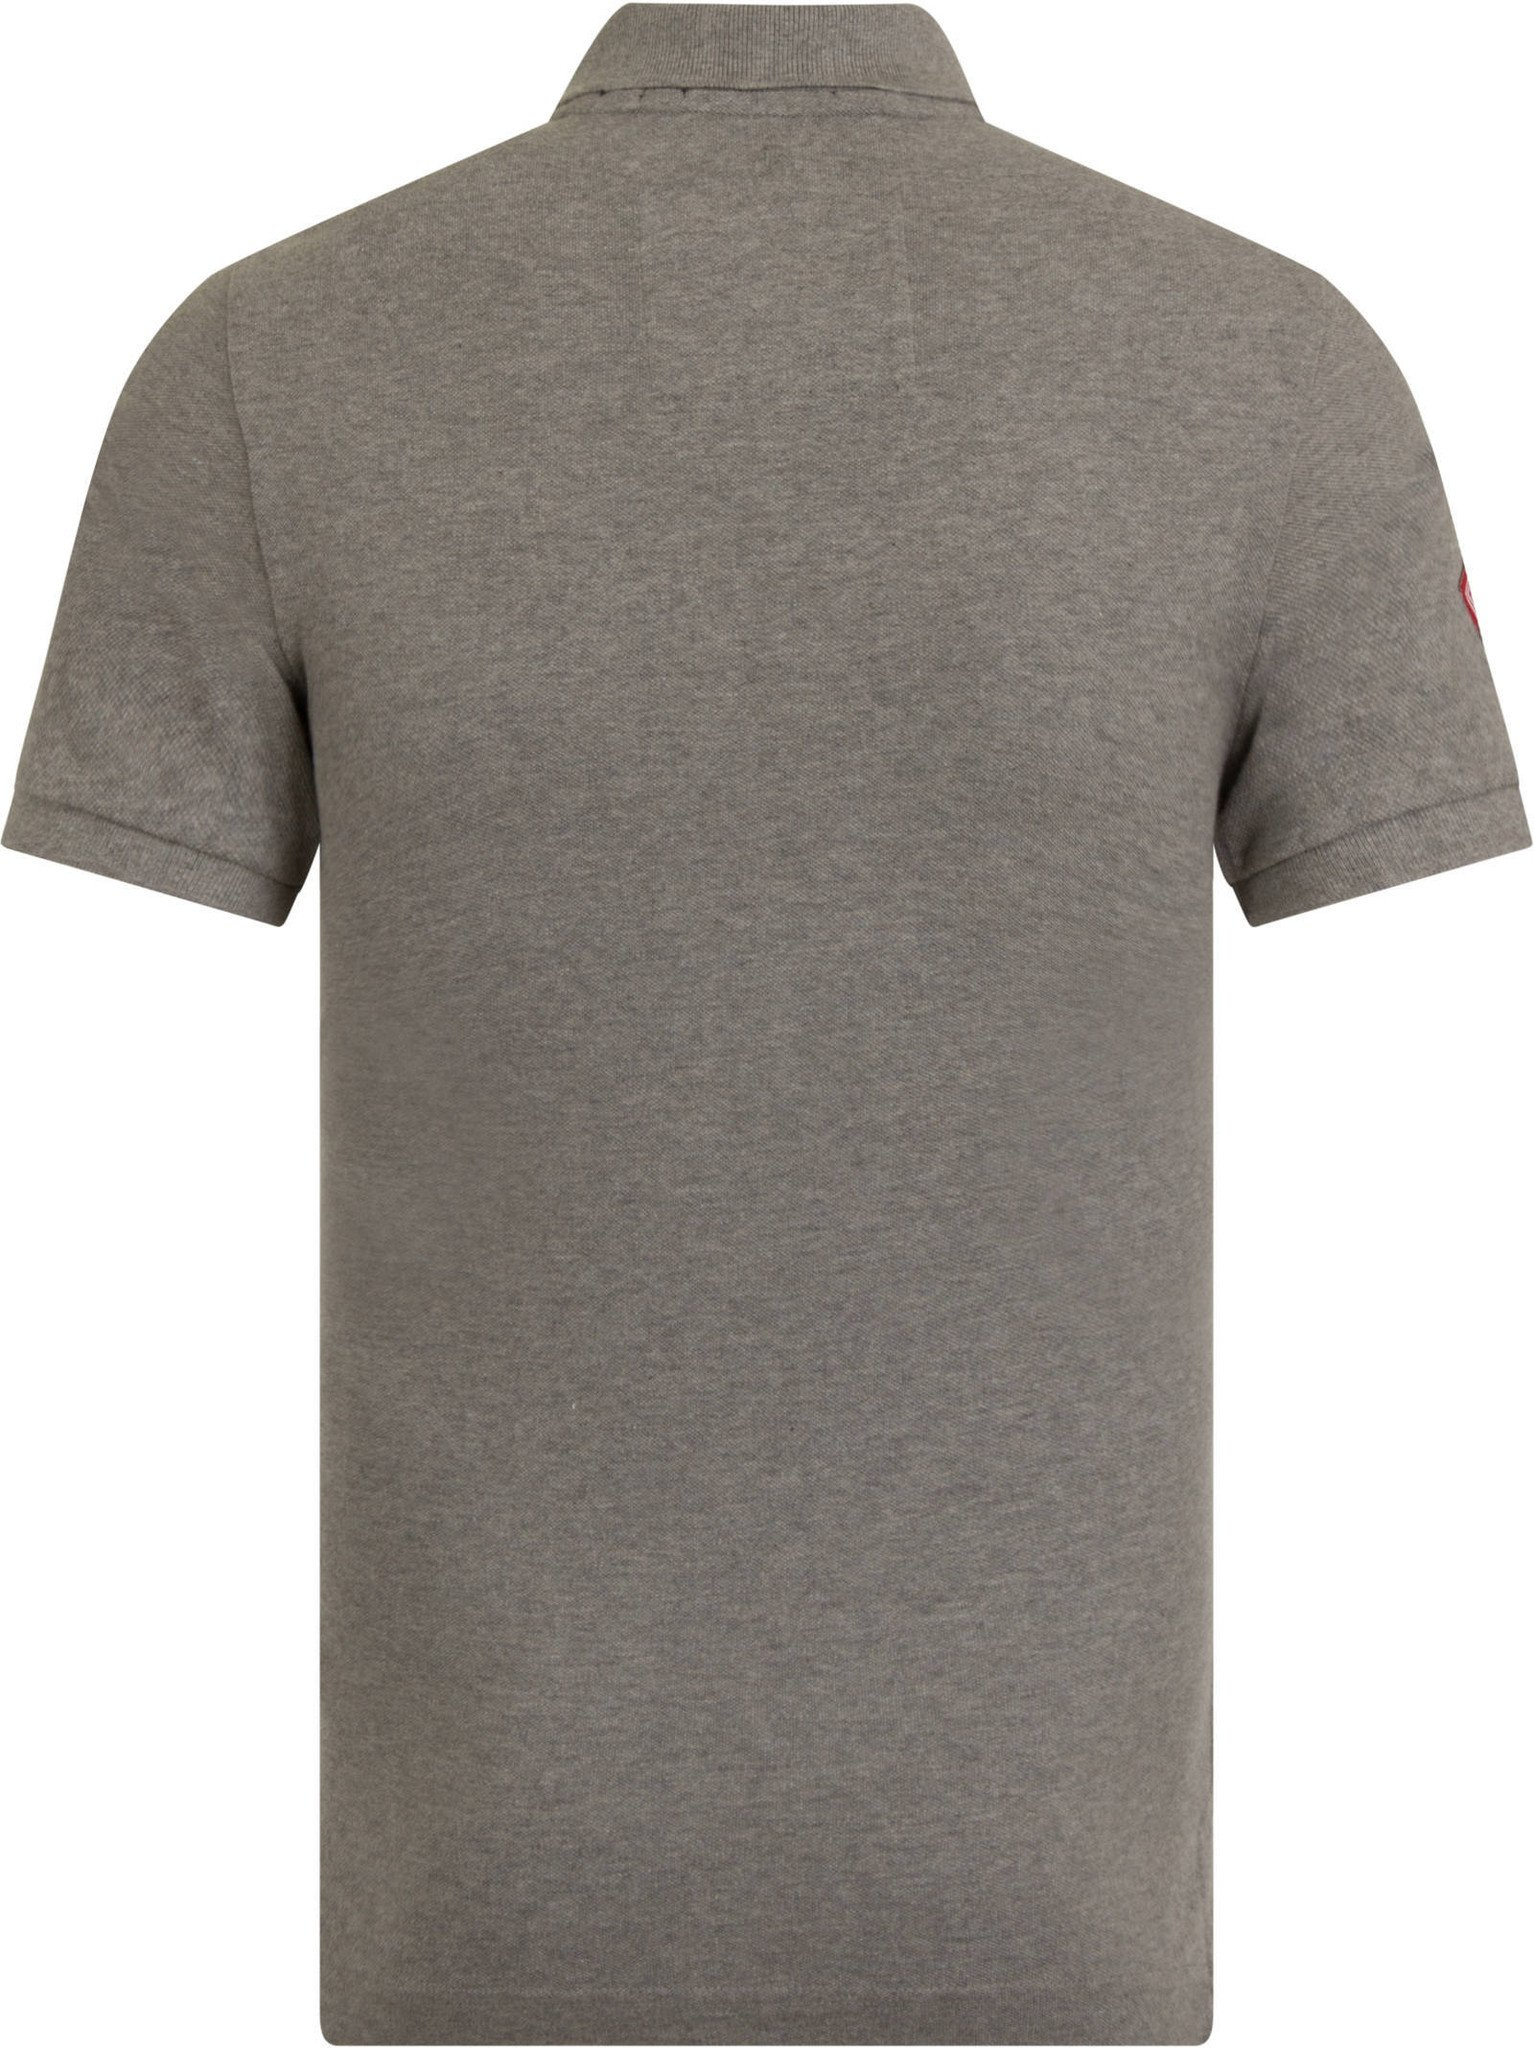 Superdry-Polo-Shirts-Classic-Pique-Short-Sleeve-Tops-Assorted-Colours thumbnail 12